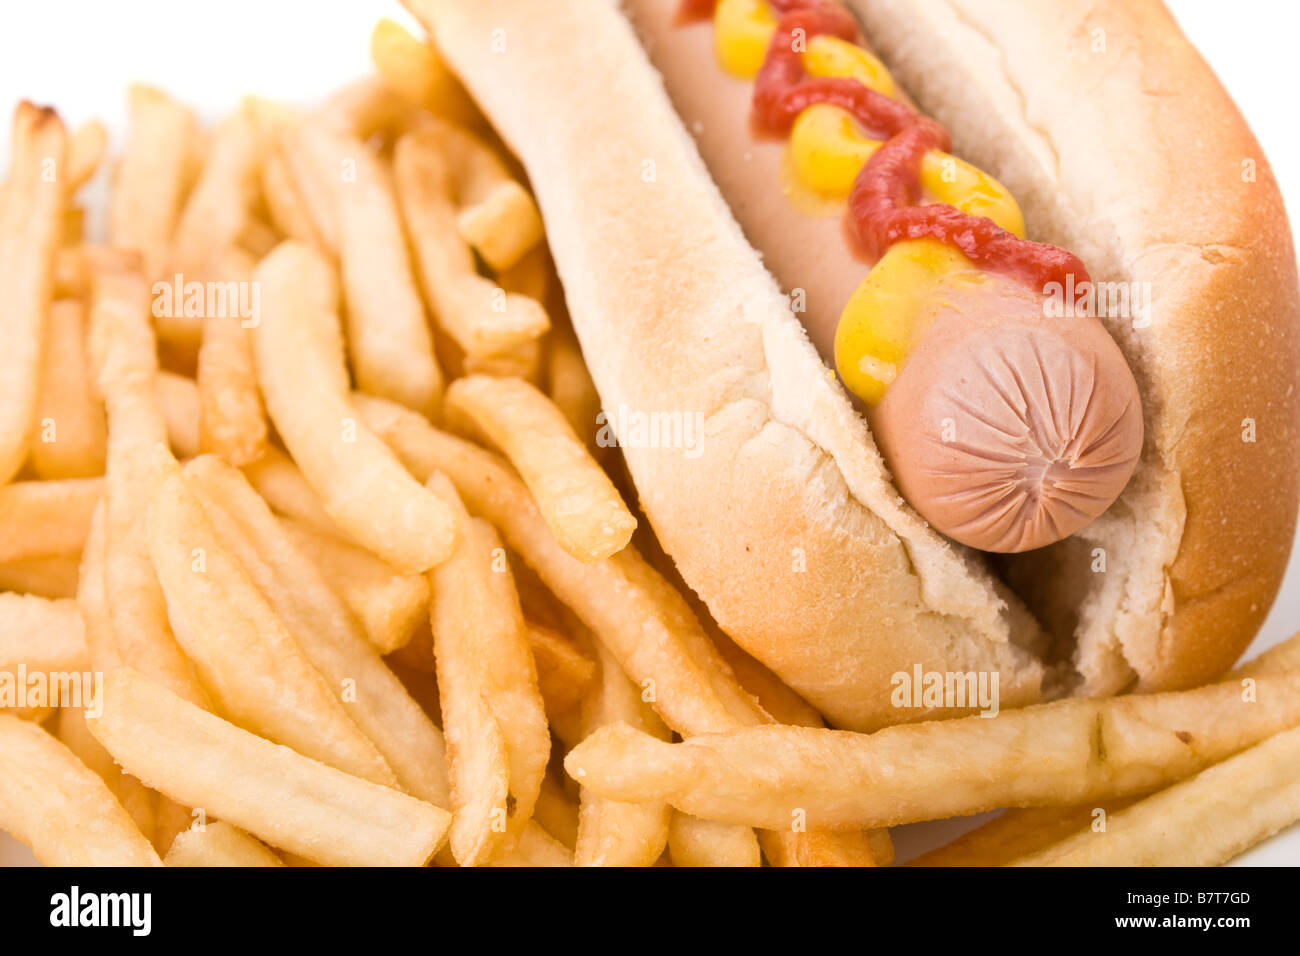 Fast food meal with hot dog and french fries. - Stock Image